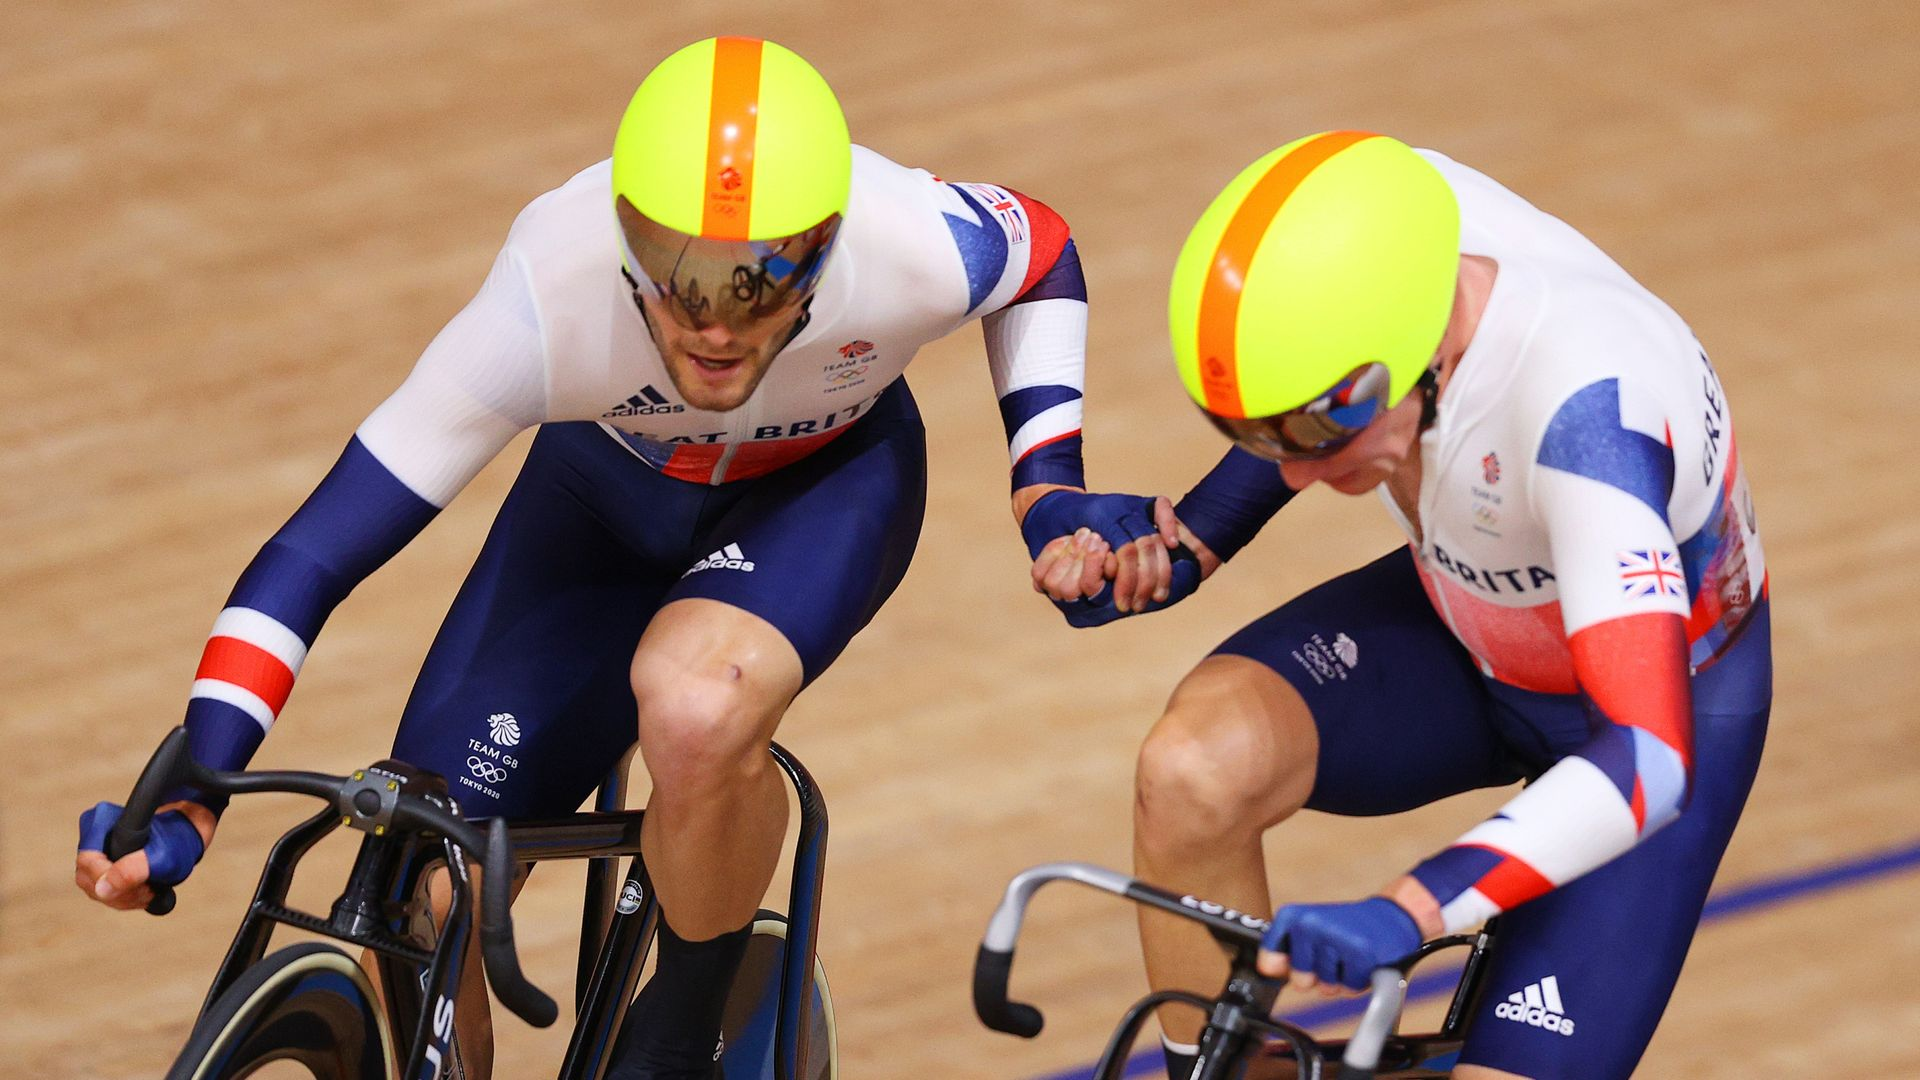 Hayter and Walls win cycling silver for Team GB